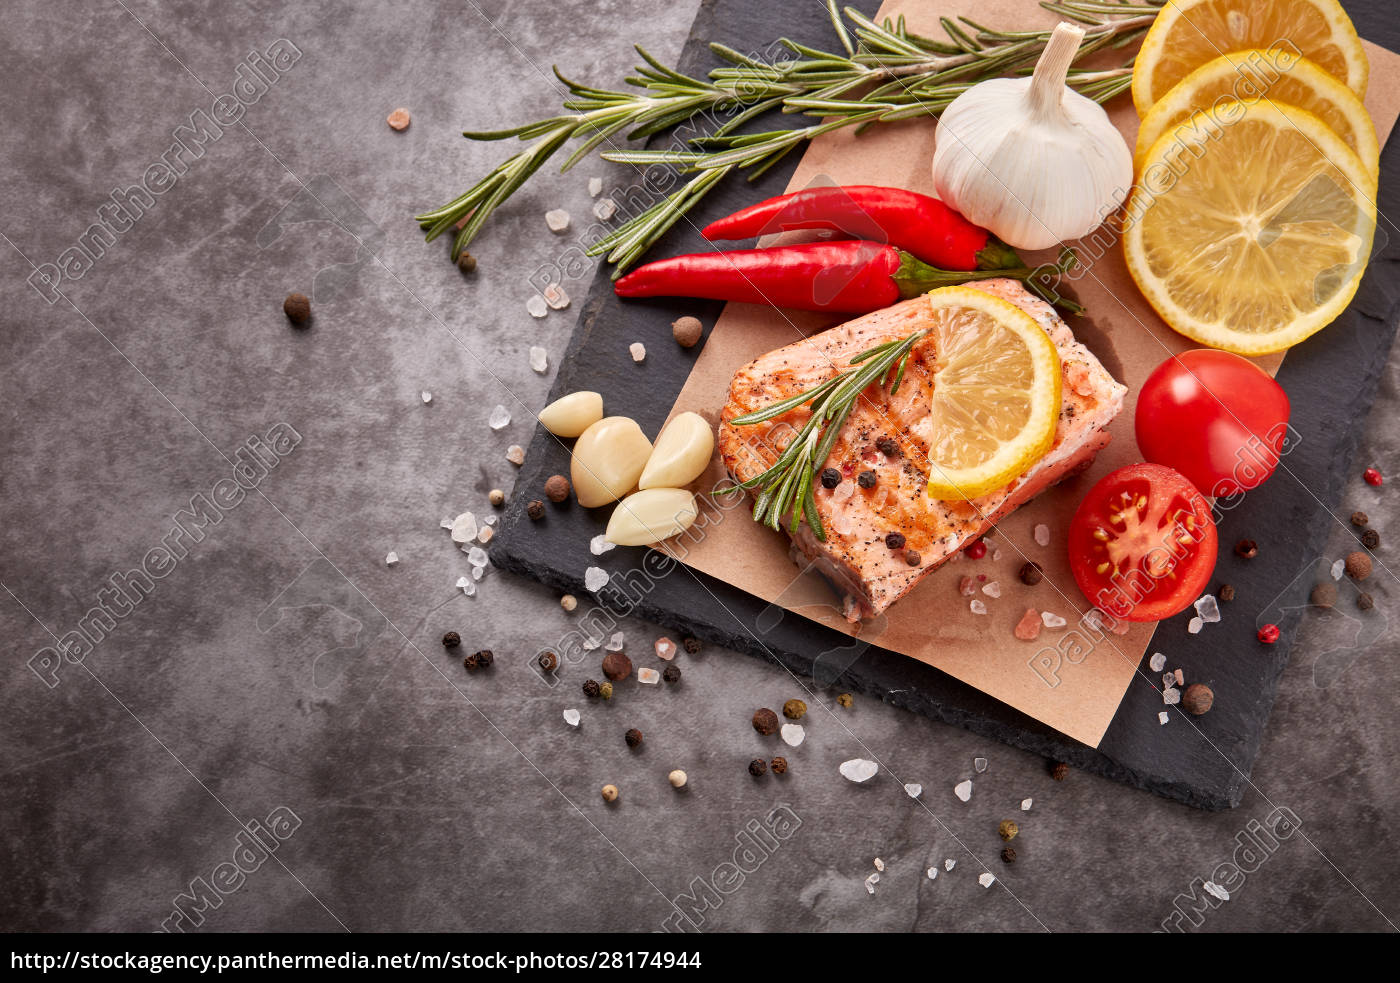 grilled, salmon, with, vegetables - 28174944